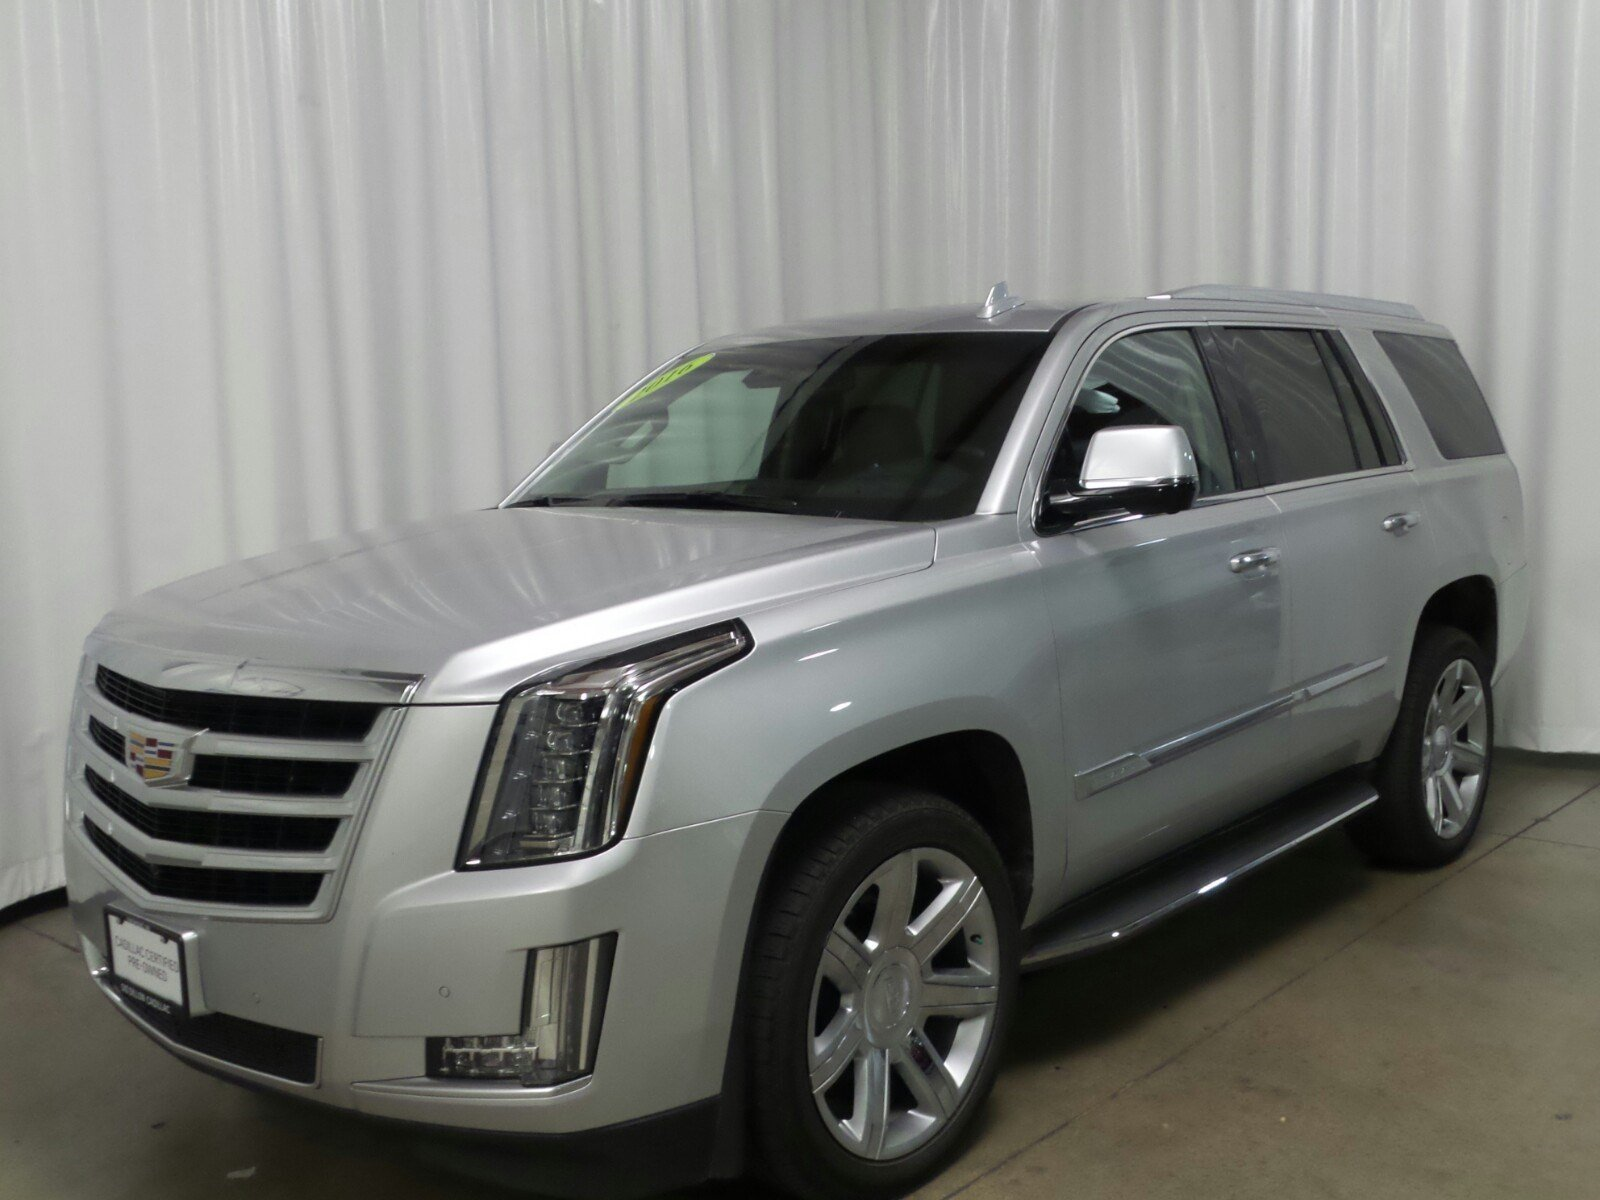 Certified Pre Owned 2016 Cadillac Escalade Luxury Collection SUV in